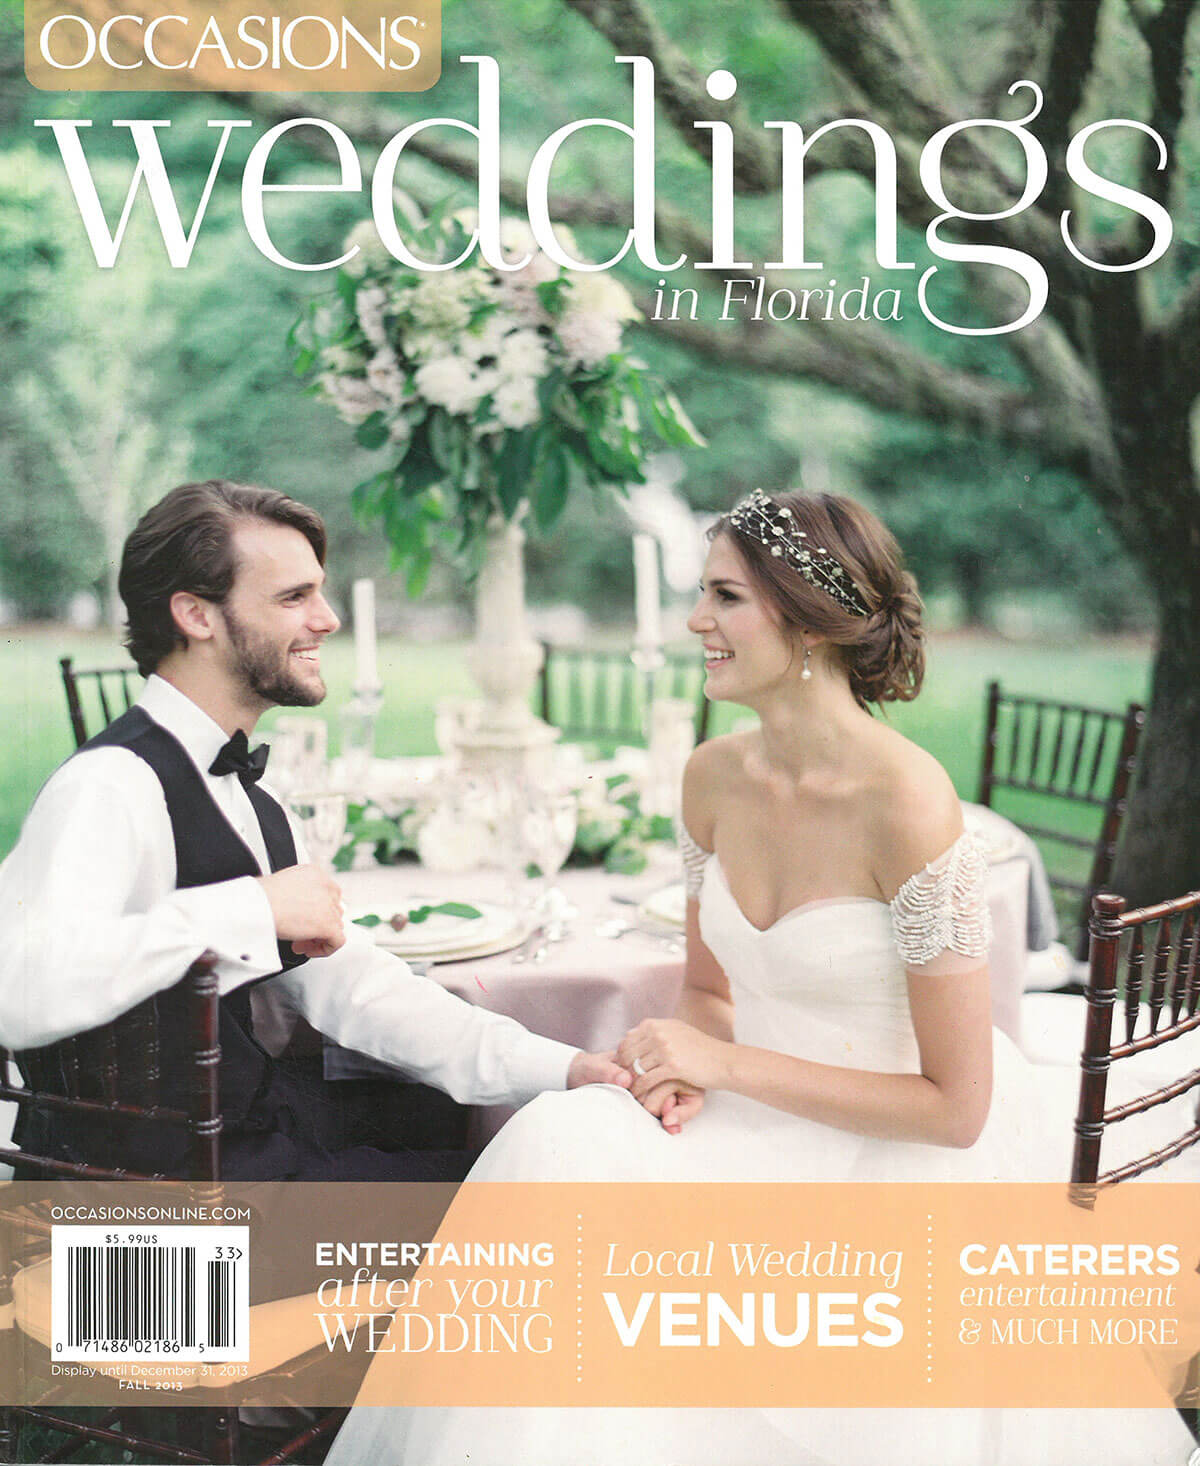 Occasions Weddings in Florida Magazine - Featuring Isn't She Lovely